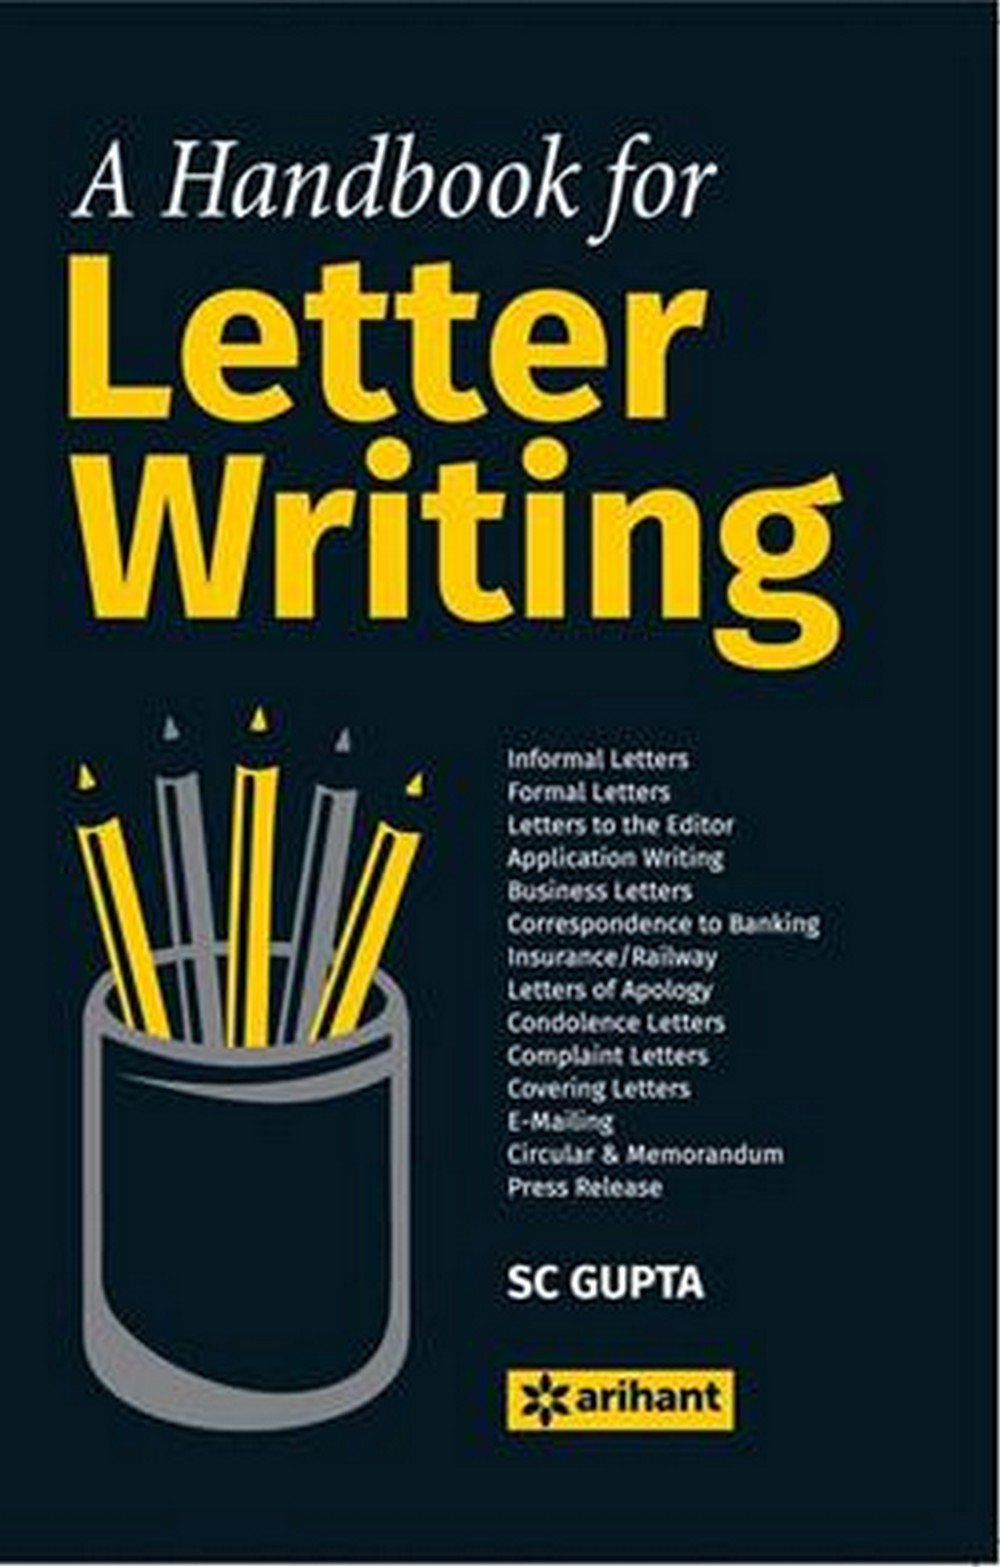 A Handbook for Letter Writing: S C Gupta (Author): 9789350947302